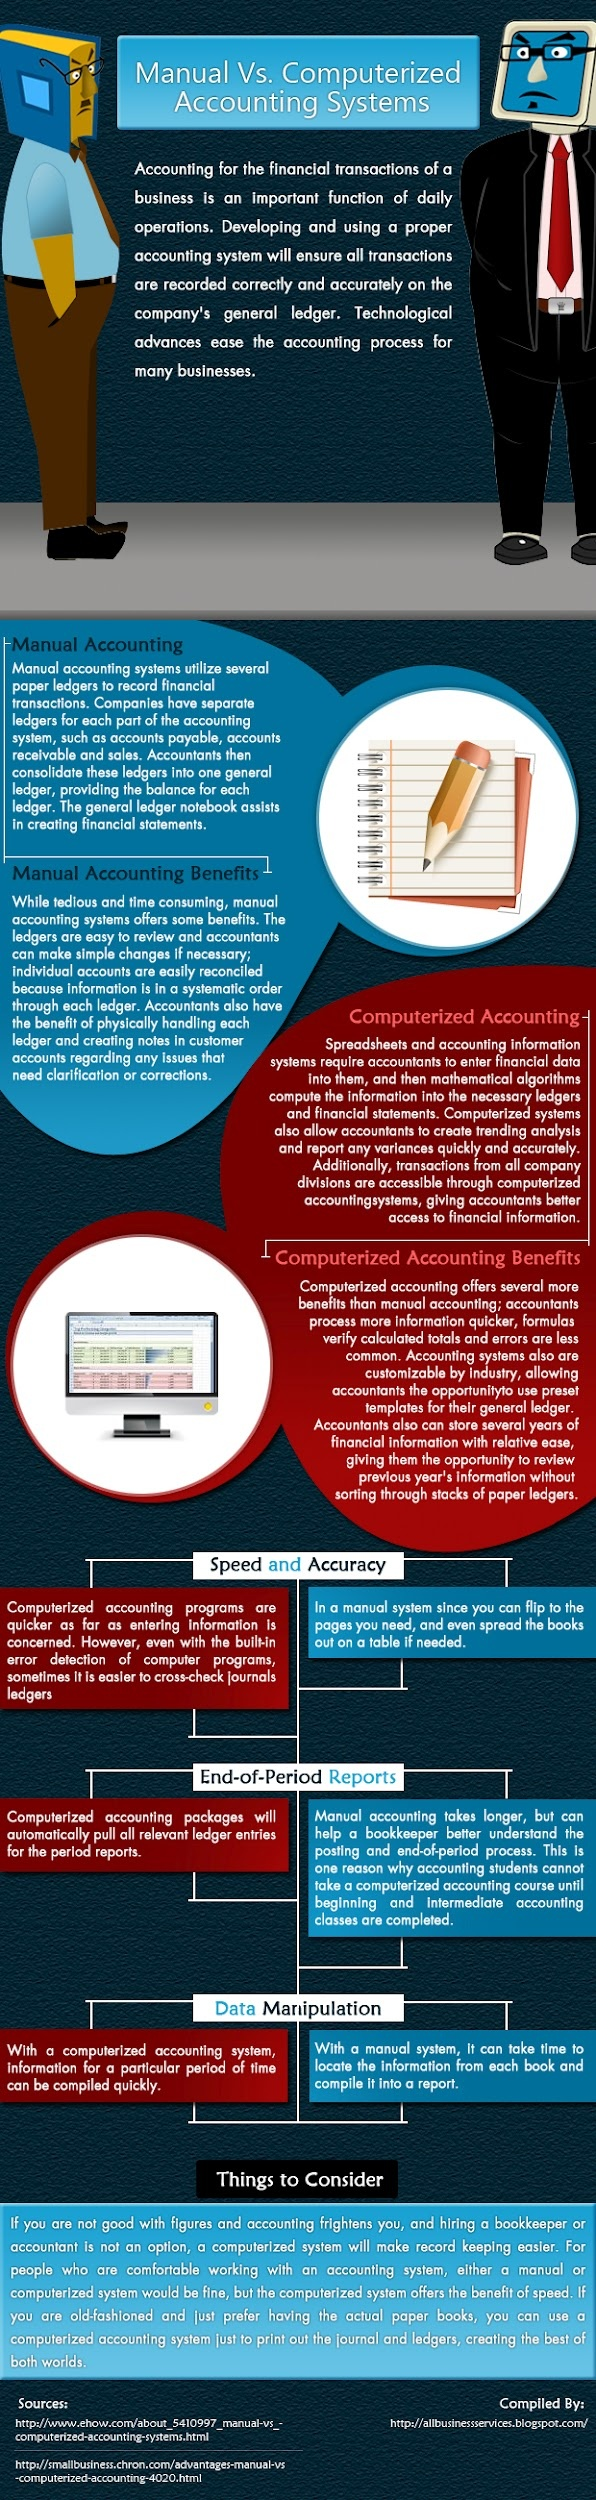 Manual-Vs.-Computerized Accounting Systems